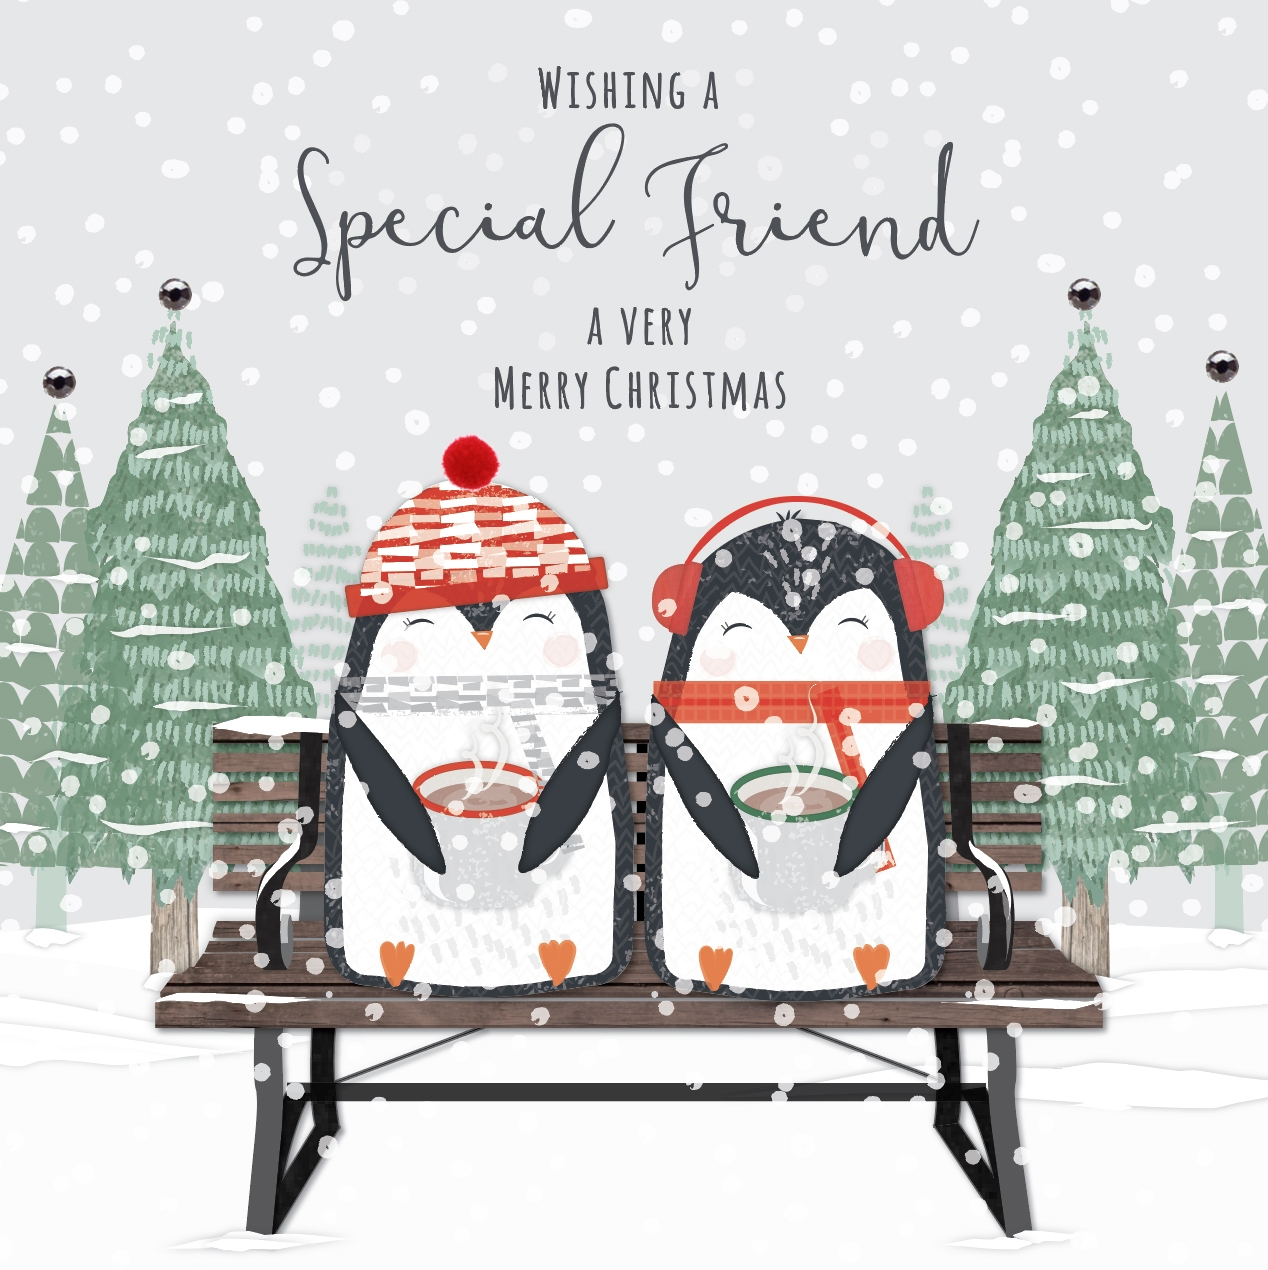 Festive Friends - Wishing a Special Friend and Very Merry Christmas